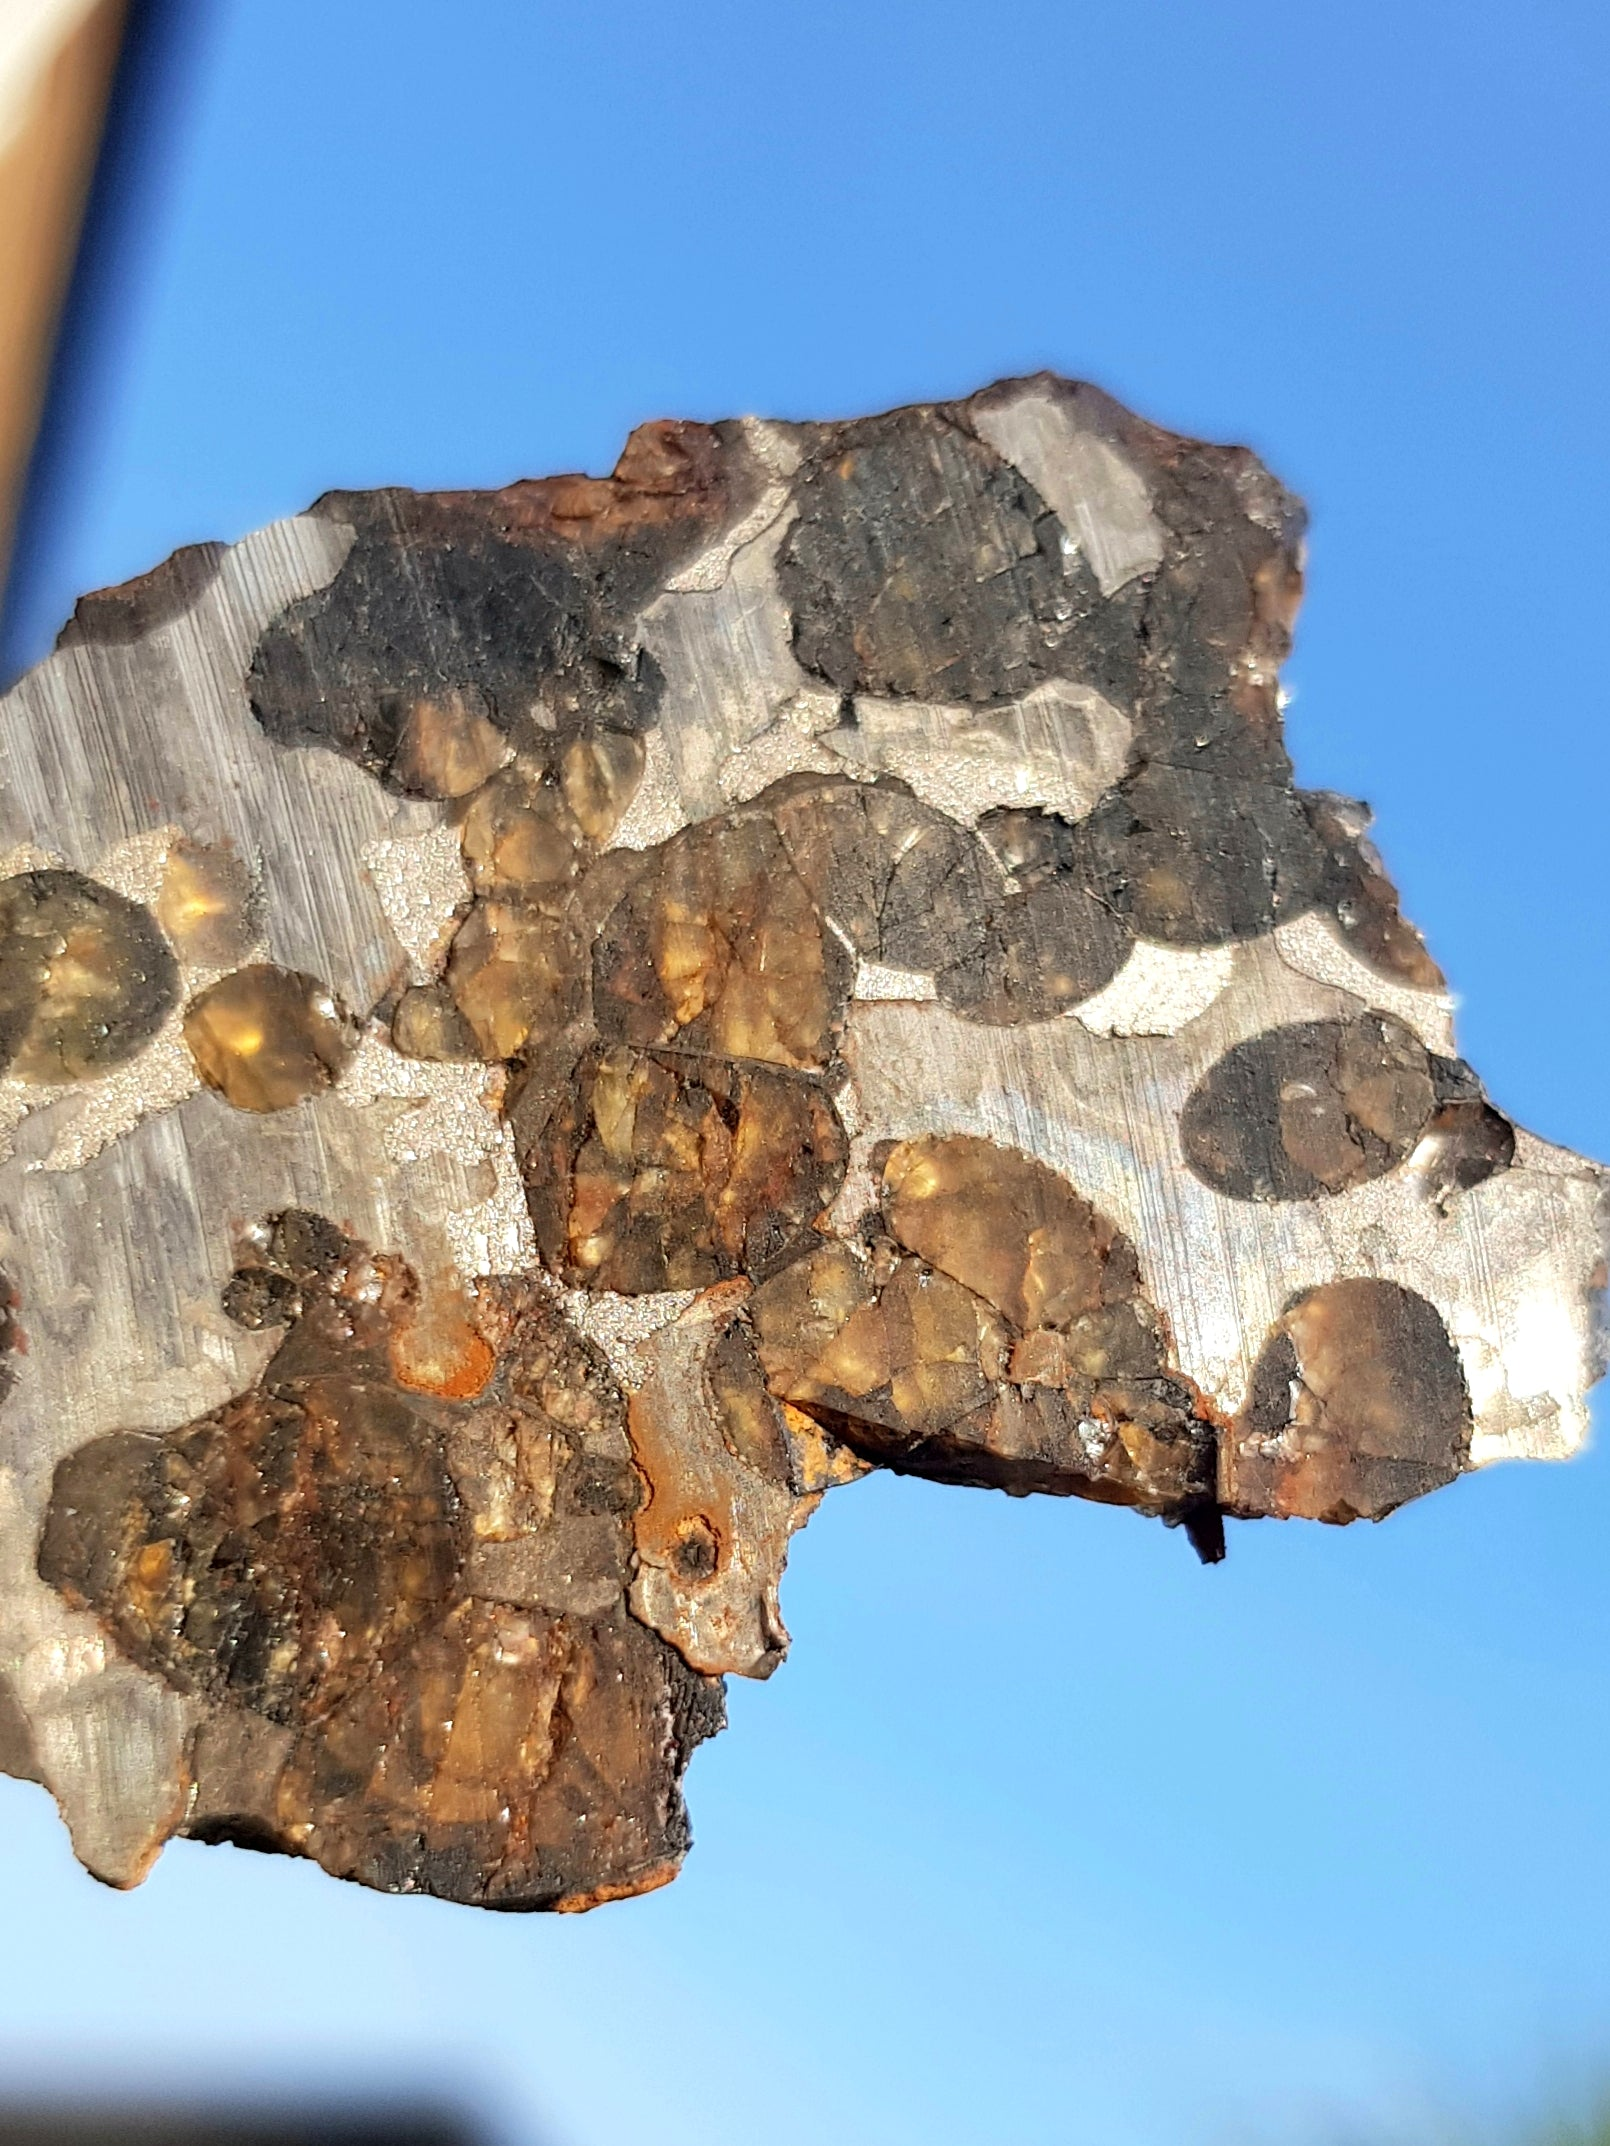 A slice of brenham ( a pallasite) held up to the light. This sample consists o crystals of orange/brown olivine within an iron nickel matrix.